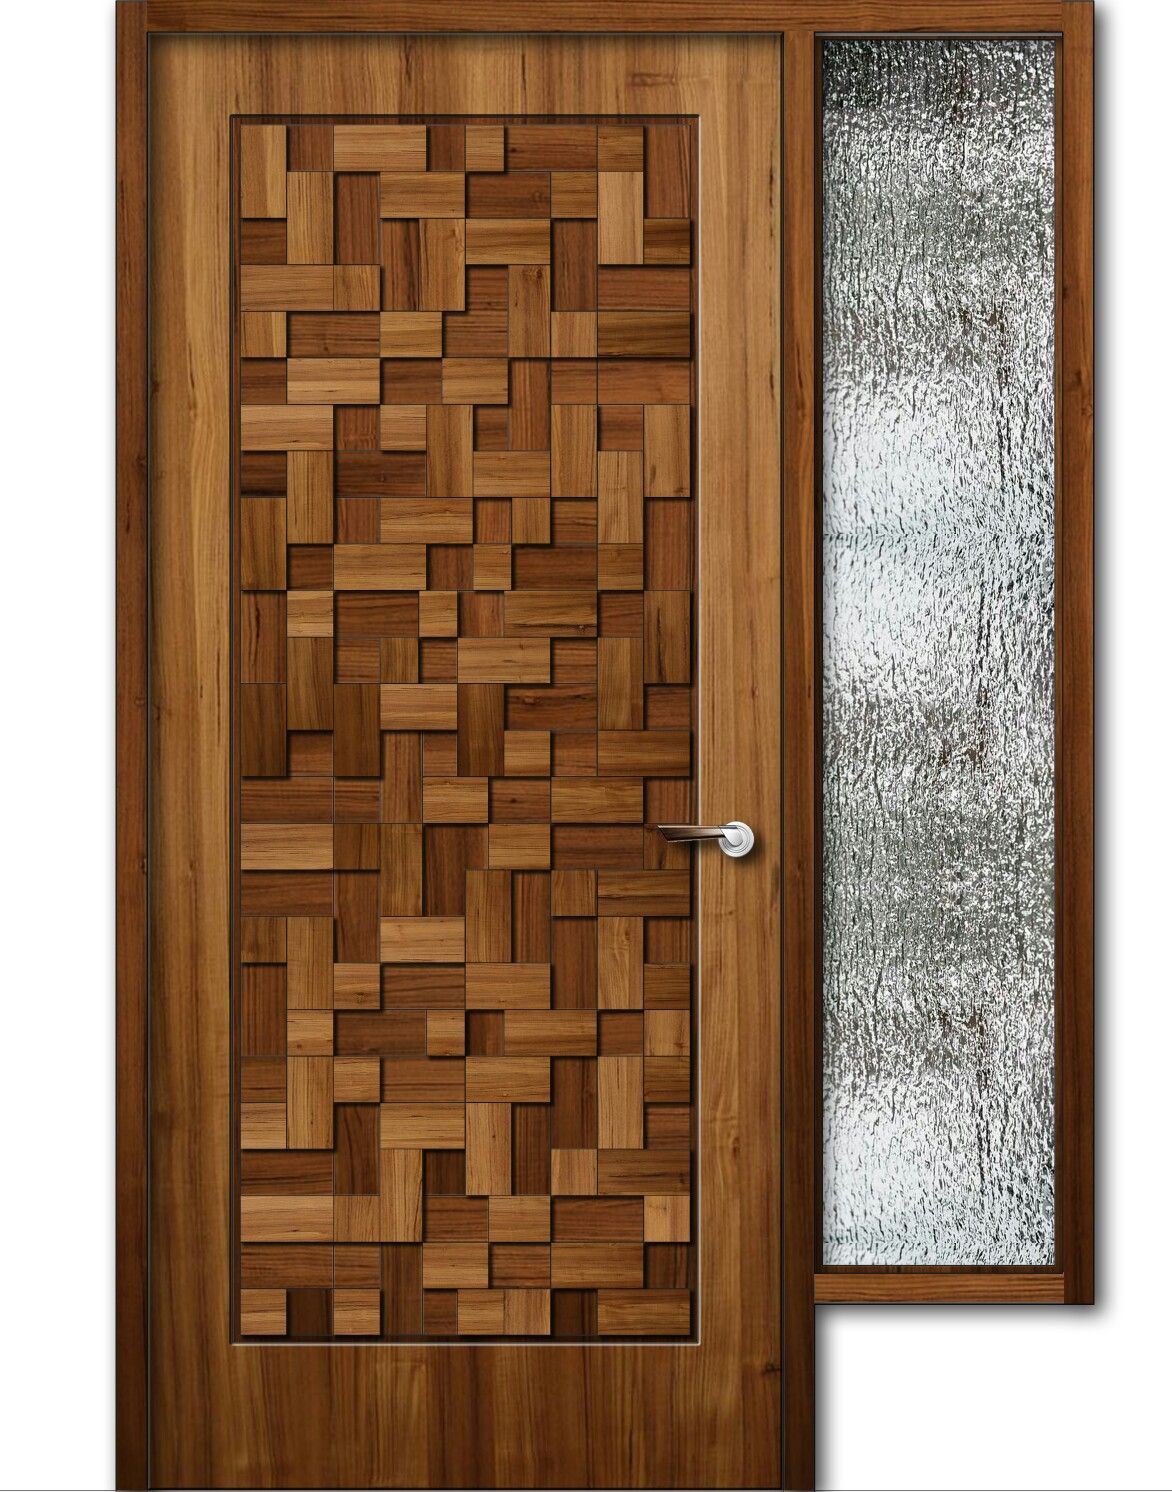 Teak wood finish wooden door with window 8feet height for Plain main door designs